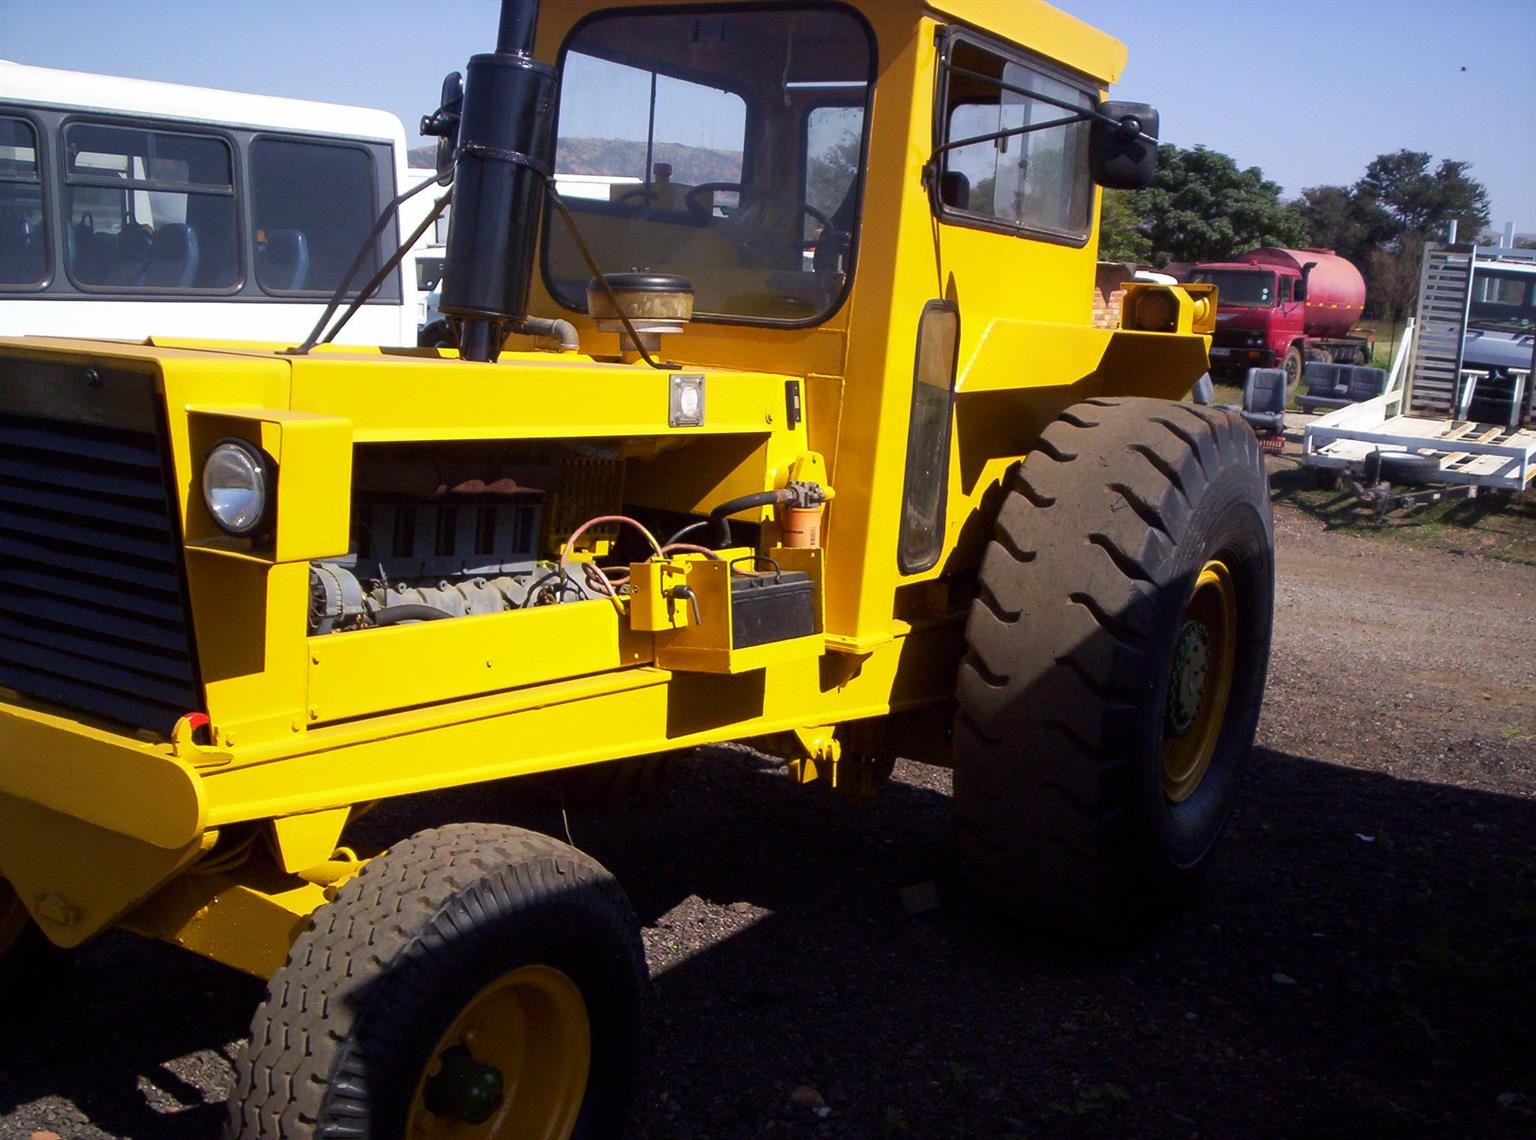 2013 REFURBISHED BELL HAULING TRACTOR.